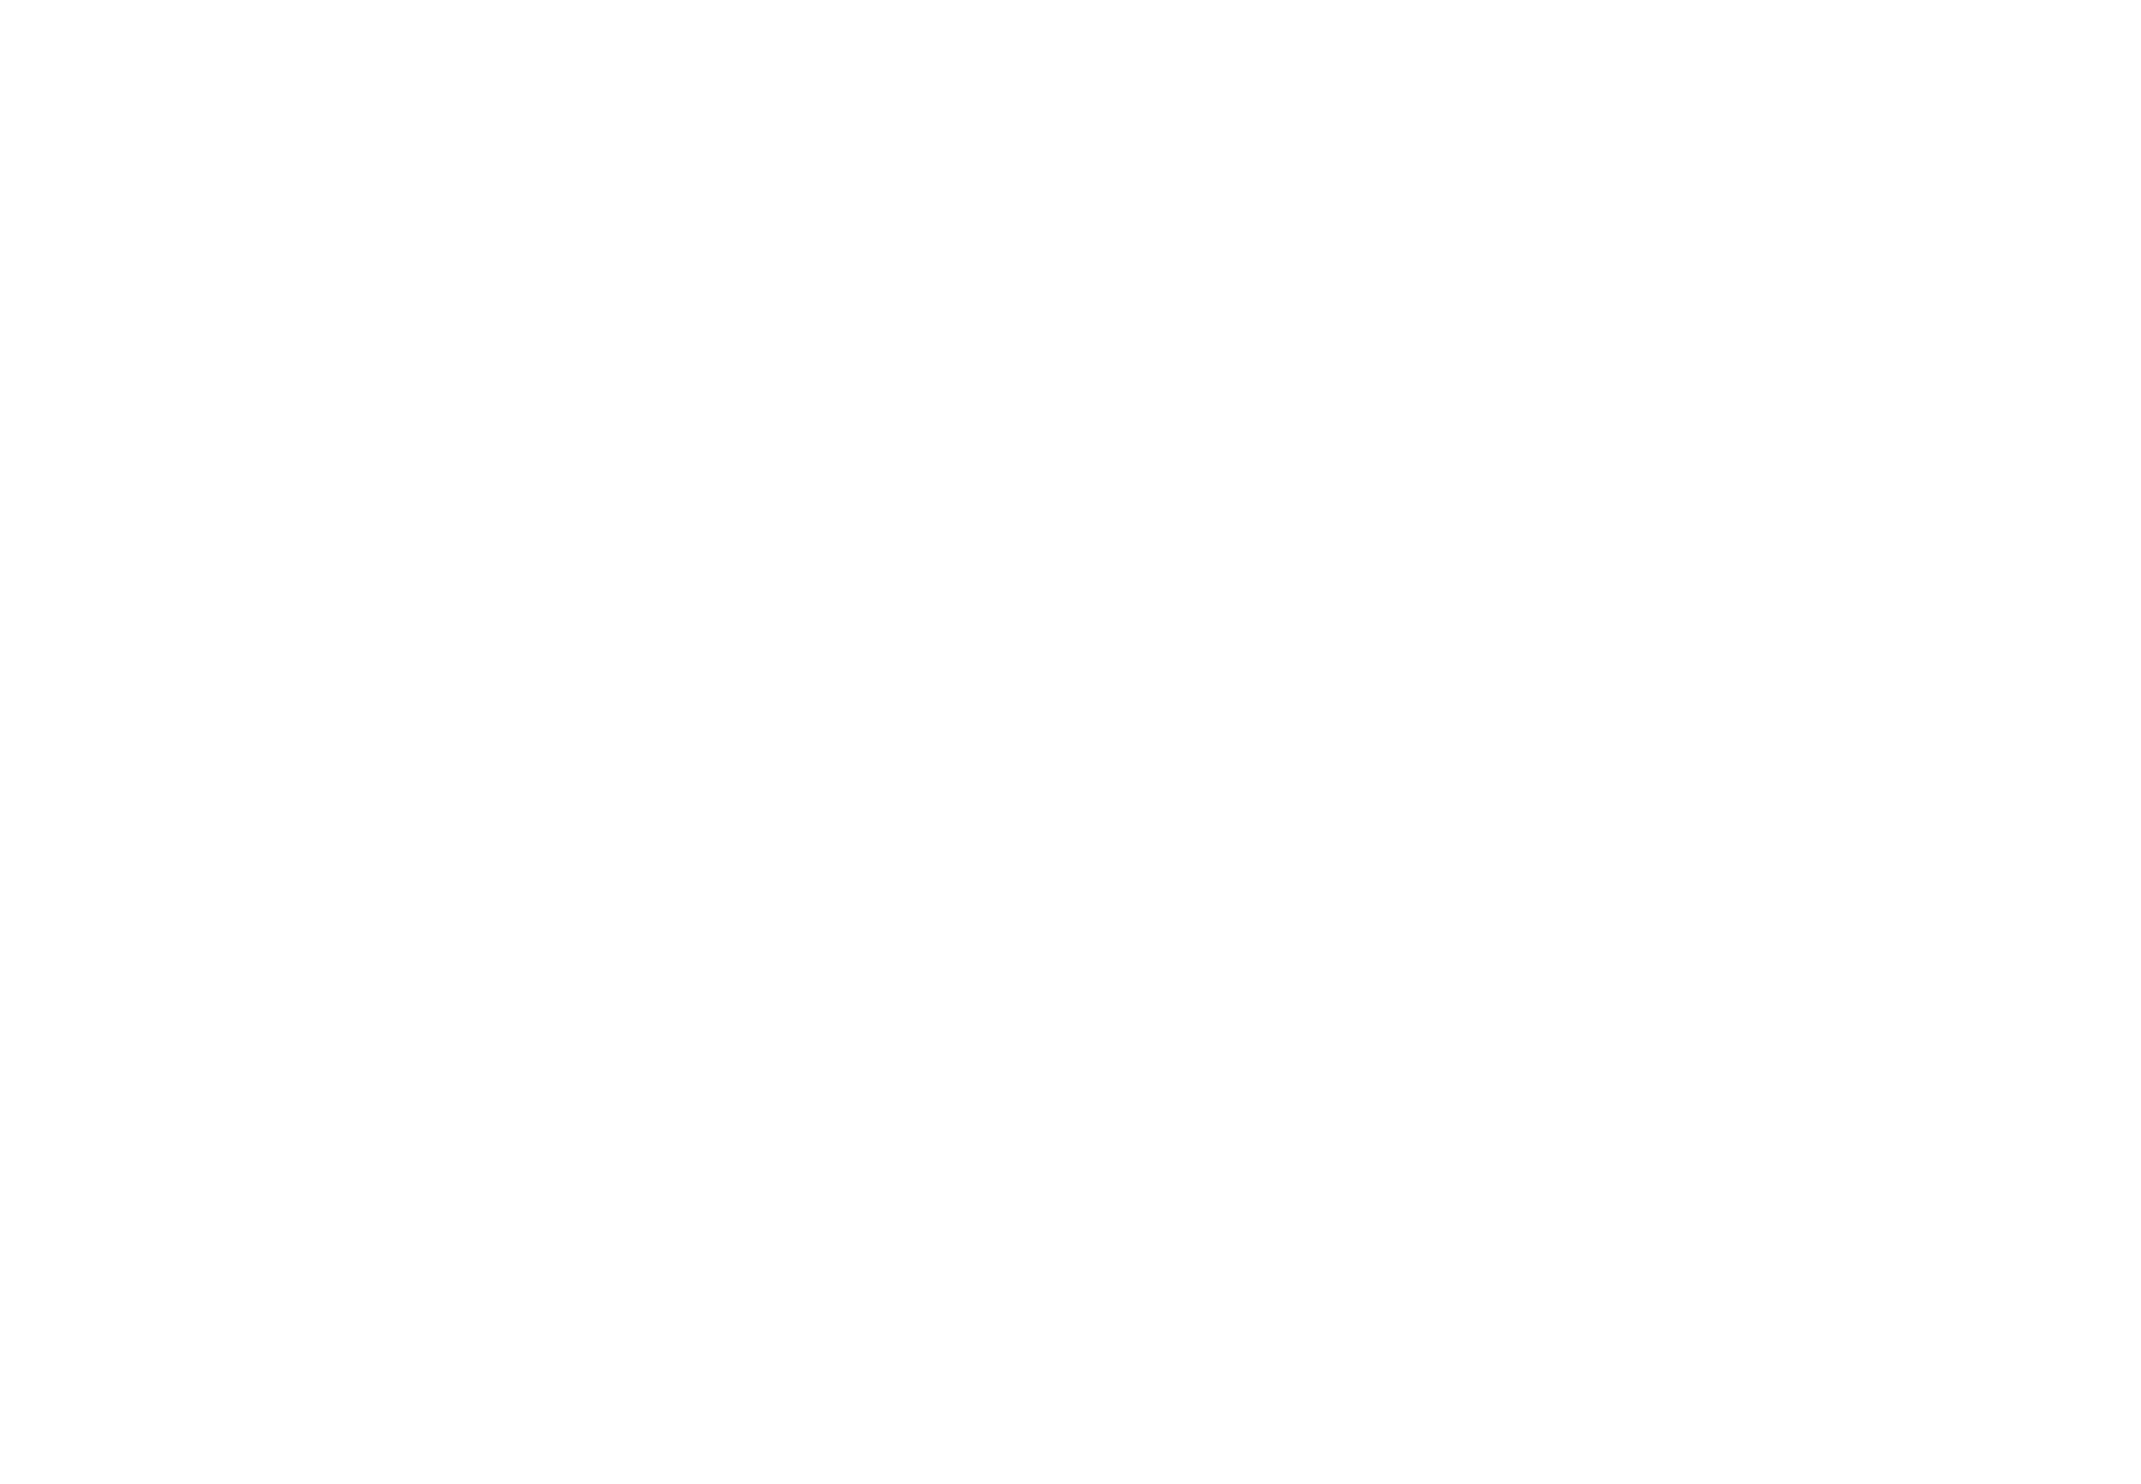 Developed Not Discovered